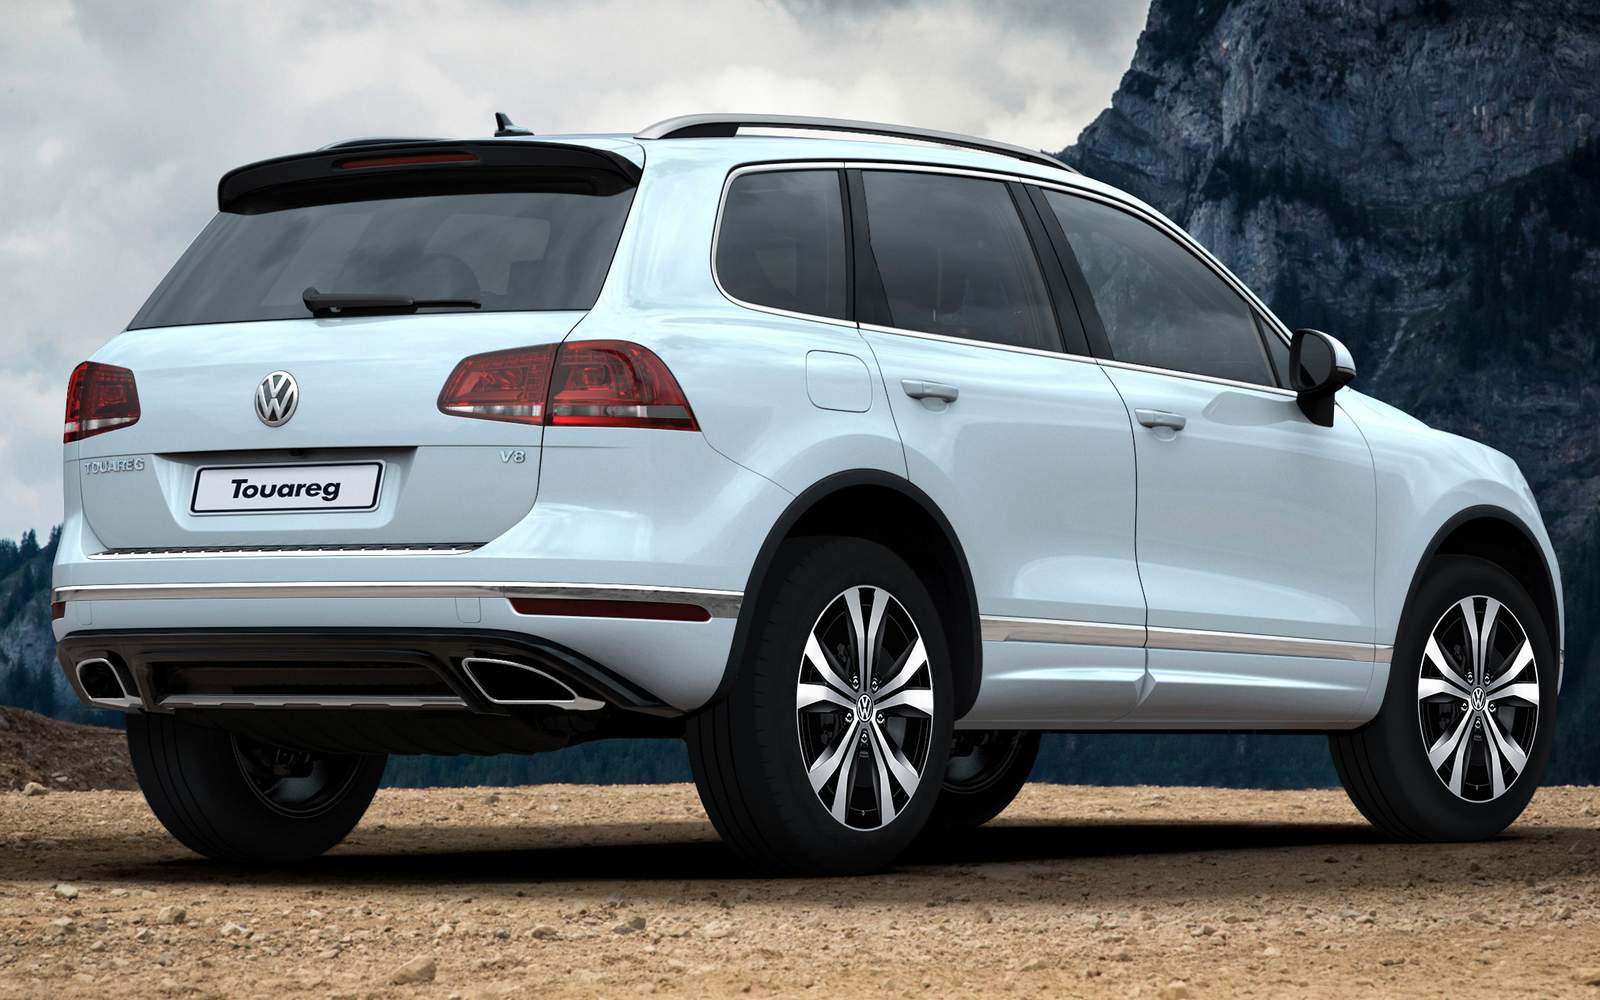 volkswagen touareg 2015 fotos e especifica es oficiais car blog br. Black Bedroom Furniture Sets. Home Design Ideas